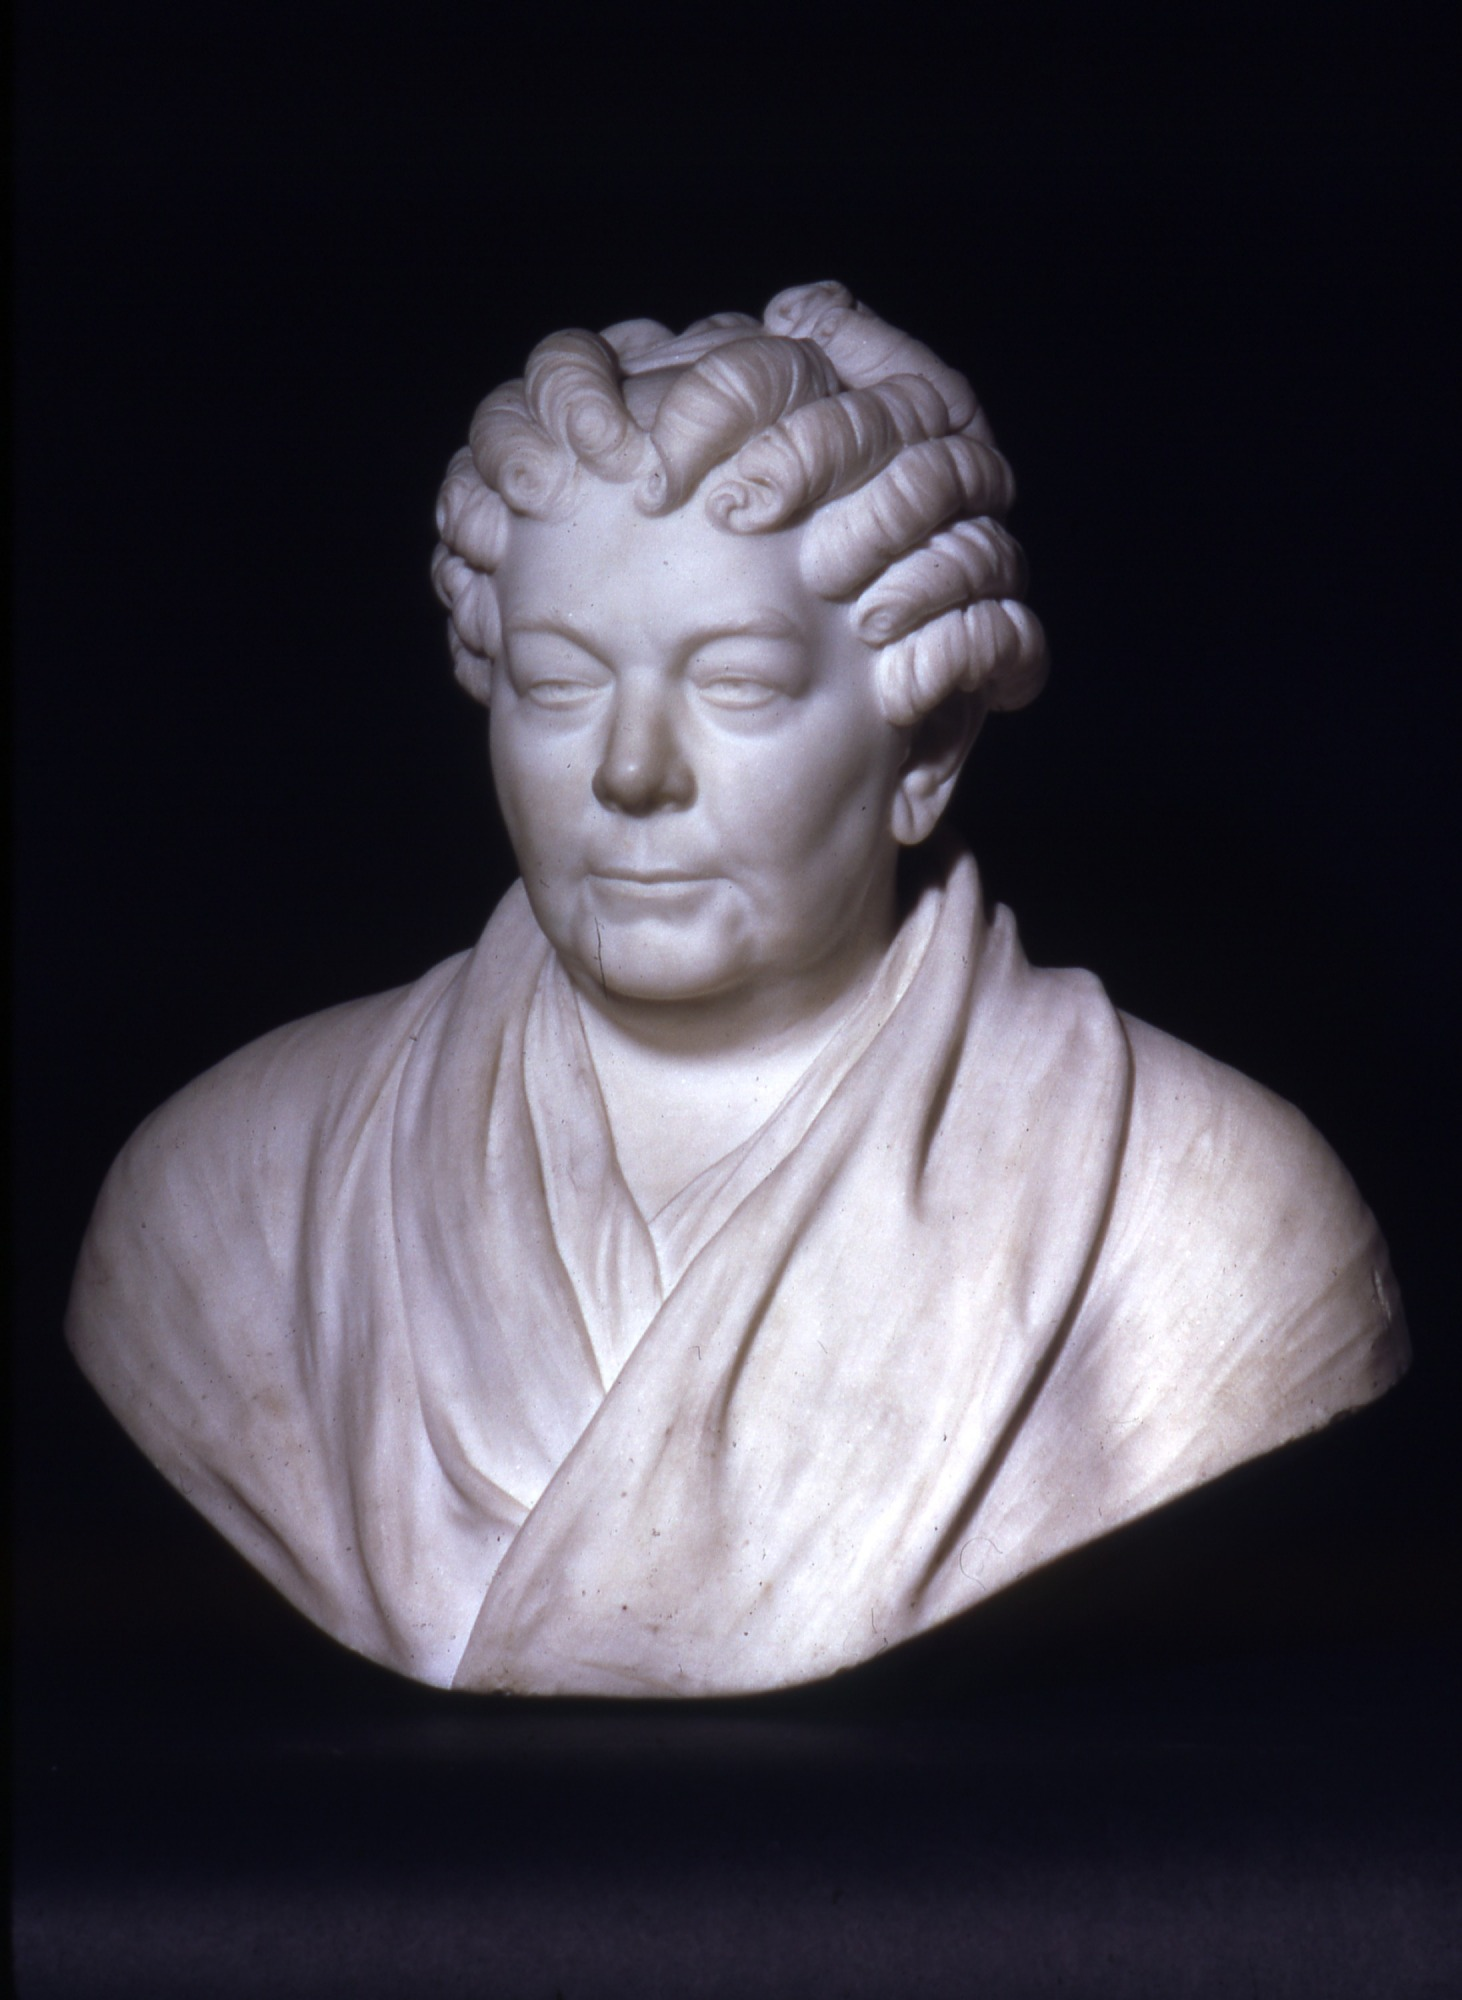 images for Bust of Elizabeth Cady Stanton by Adelaide Johnson